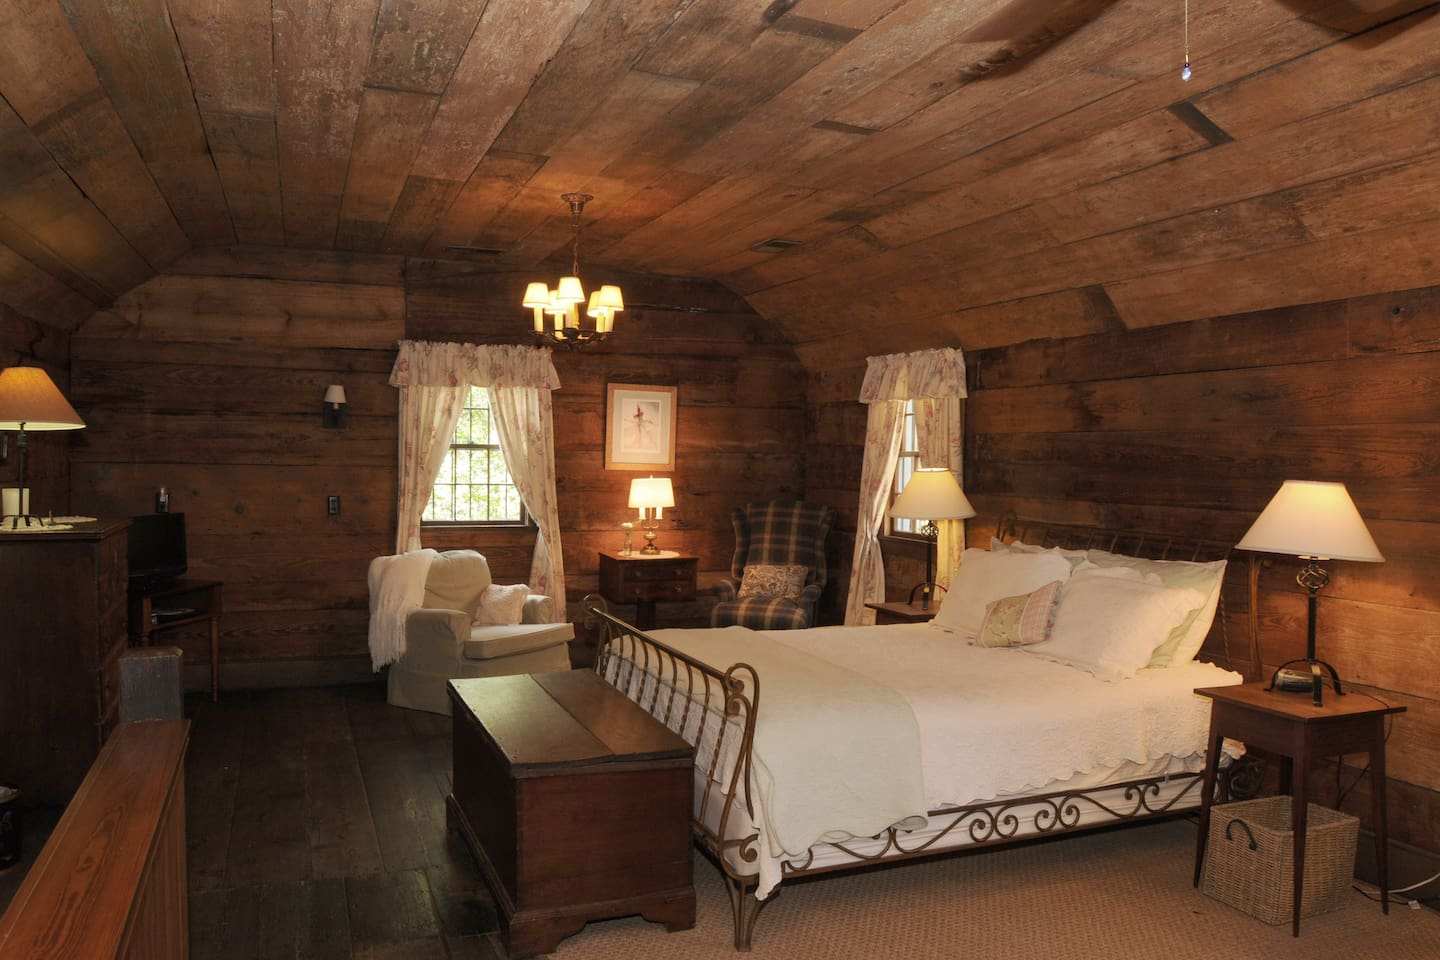 Original heart pine floors, walls and ceiling surround Queen bed and seating area upstairs.